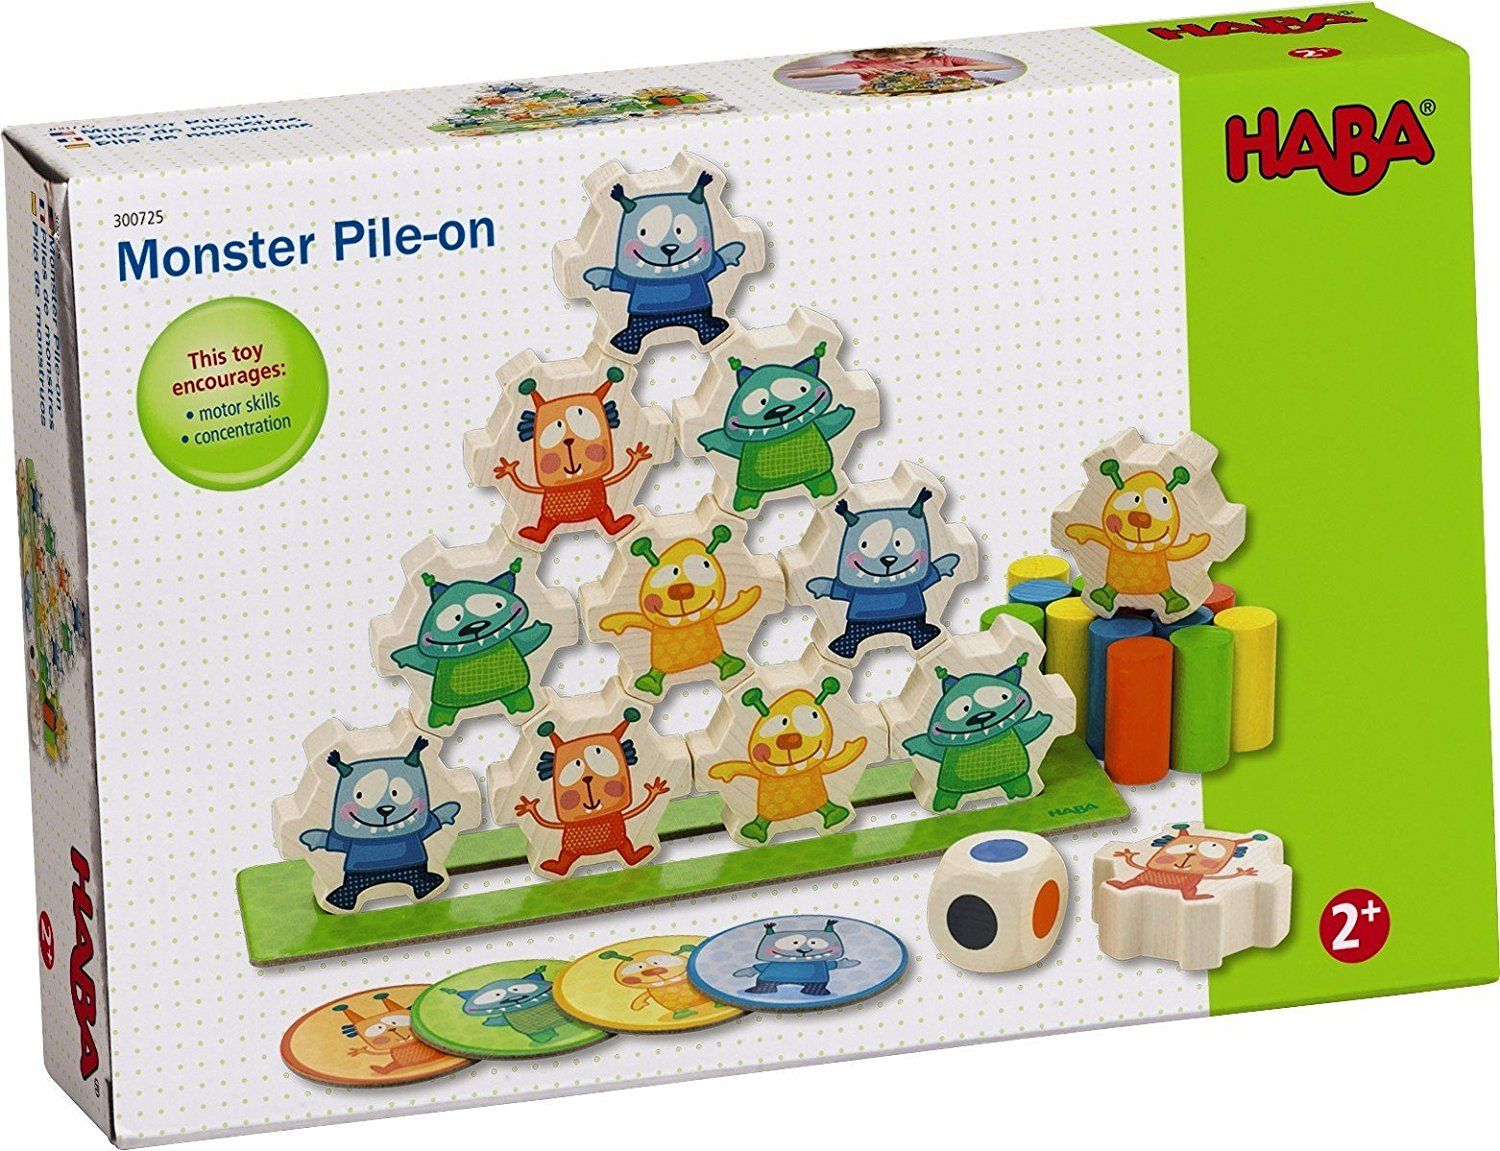 Monster Pile-On Stacking Toy by Haba (300725) by HABA